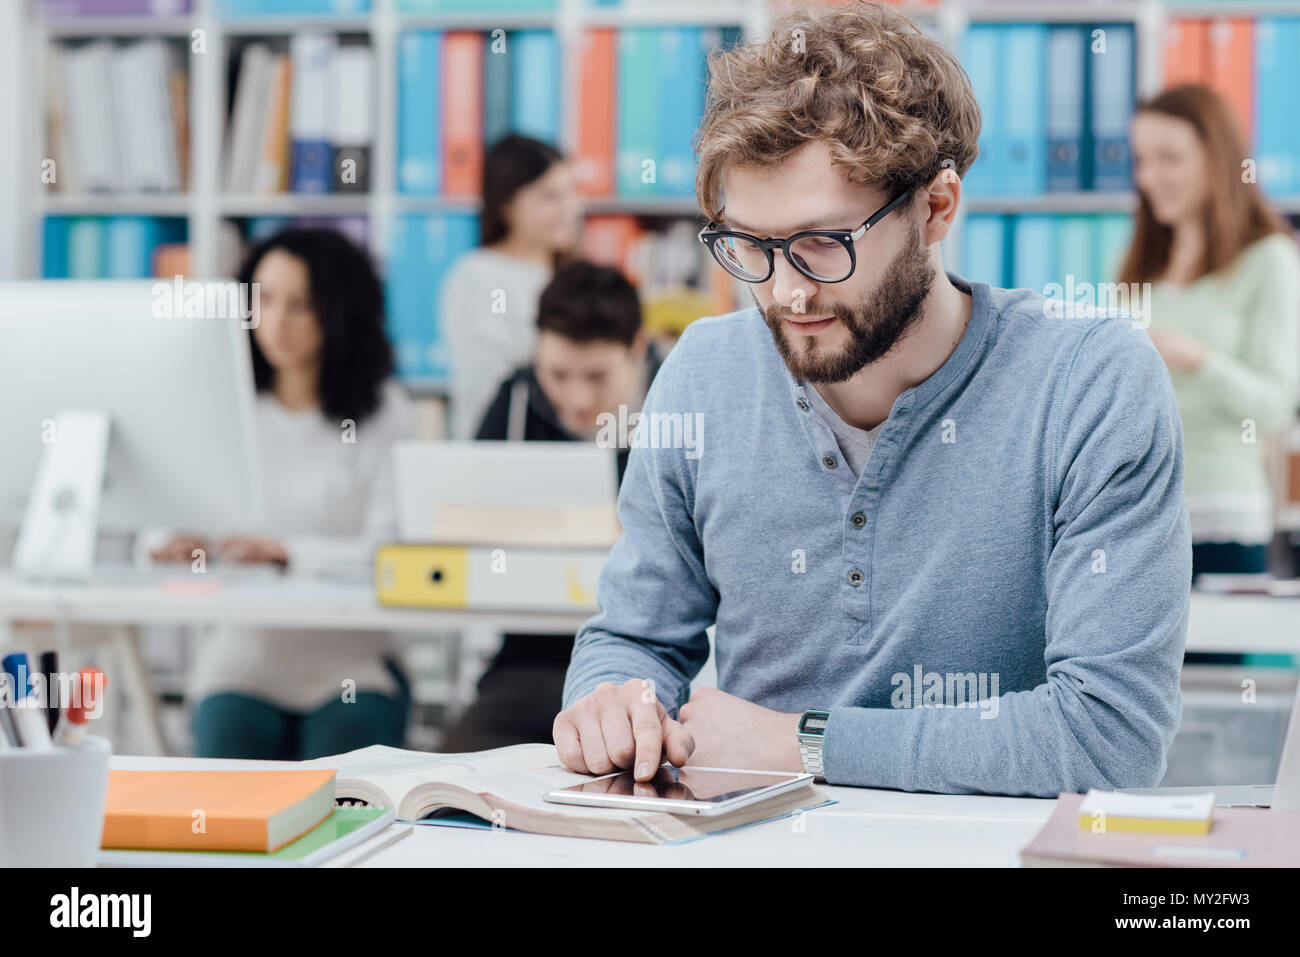 University student sitting at desk and using a digital tablet, group of students in the background - Stock Image